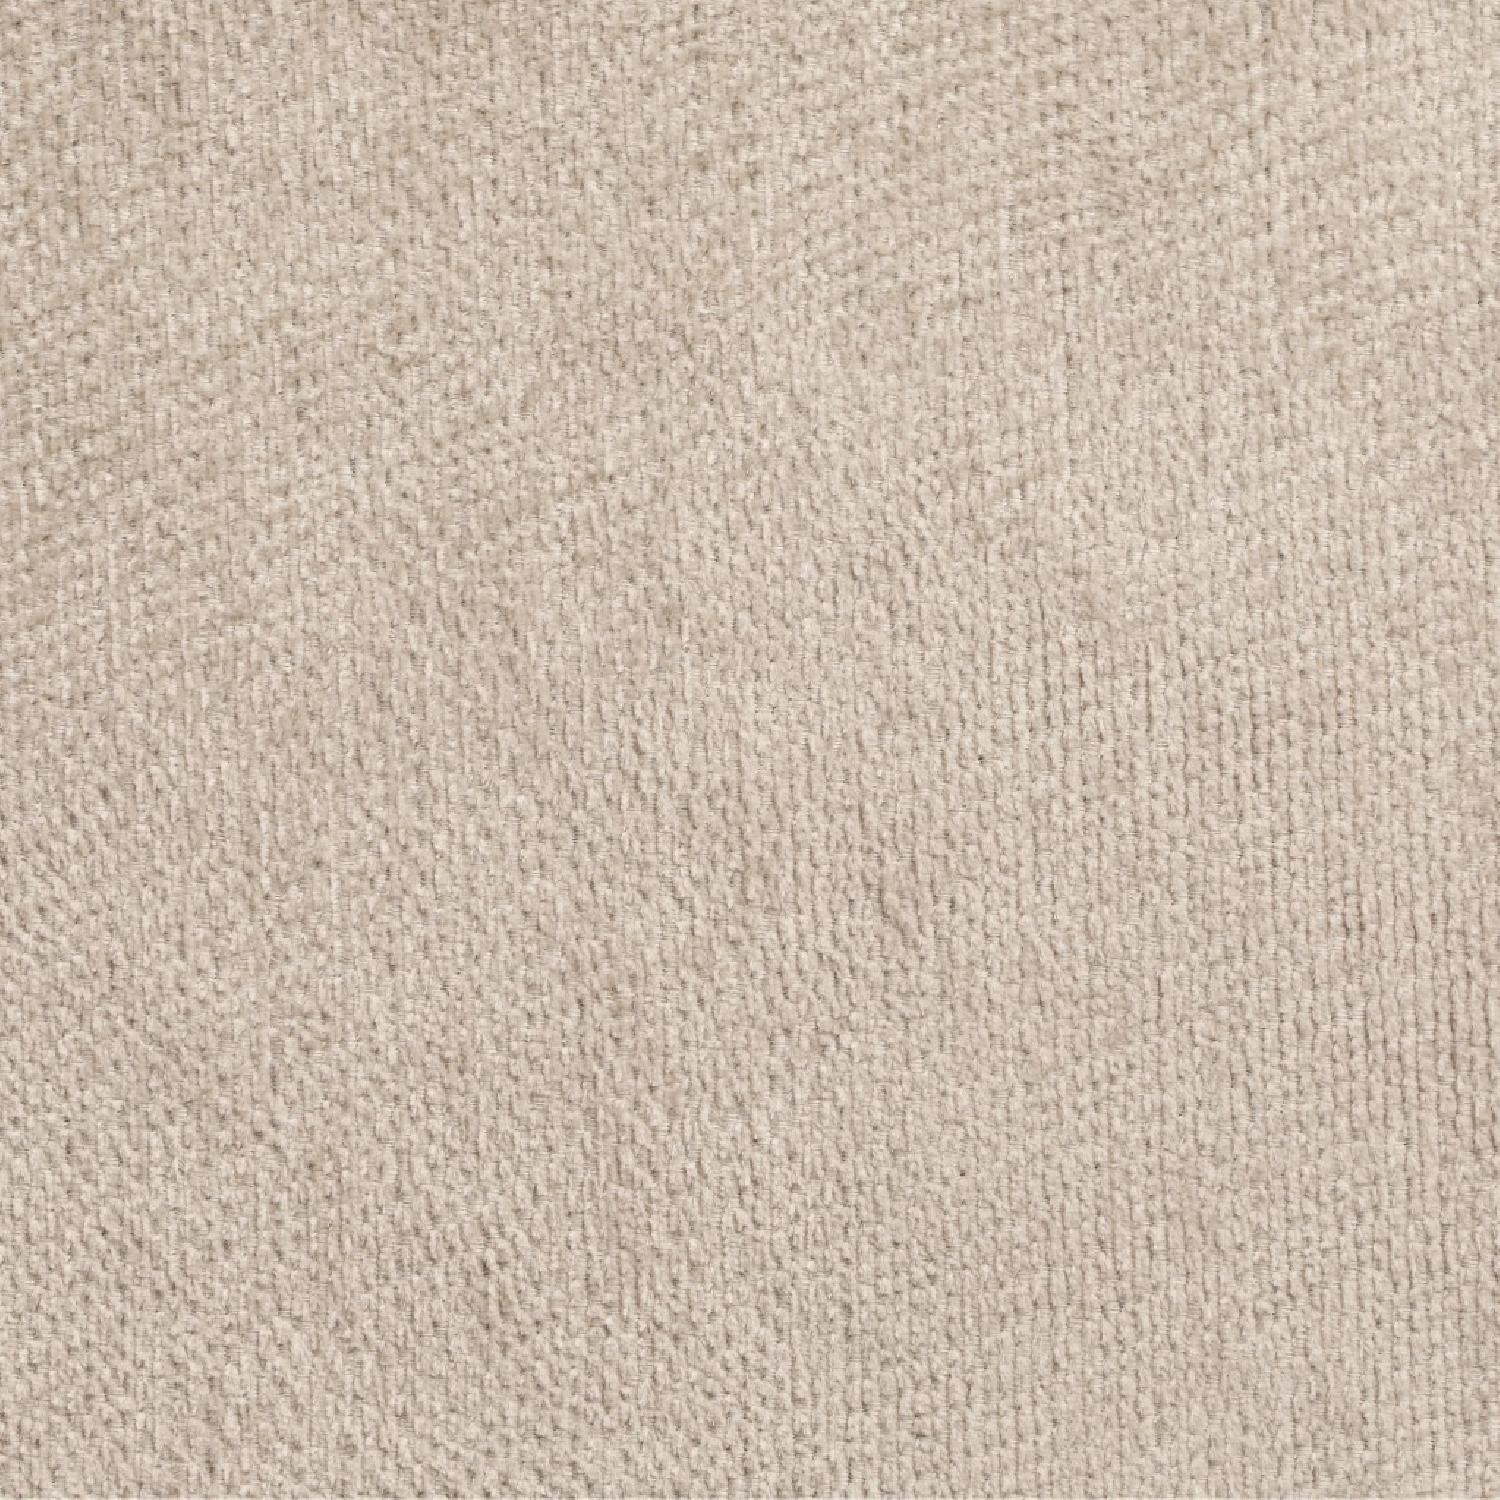 Sofabed w/ Cupholder Armrests in Beige Chenille Fabric - image-7